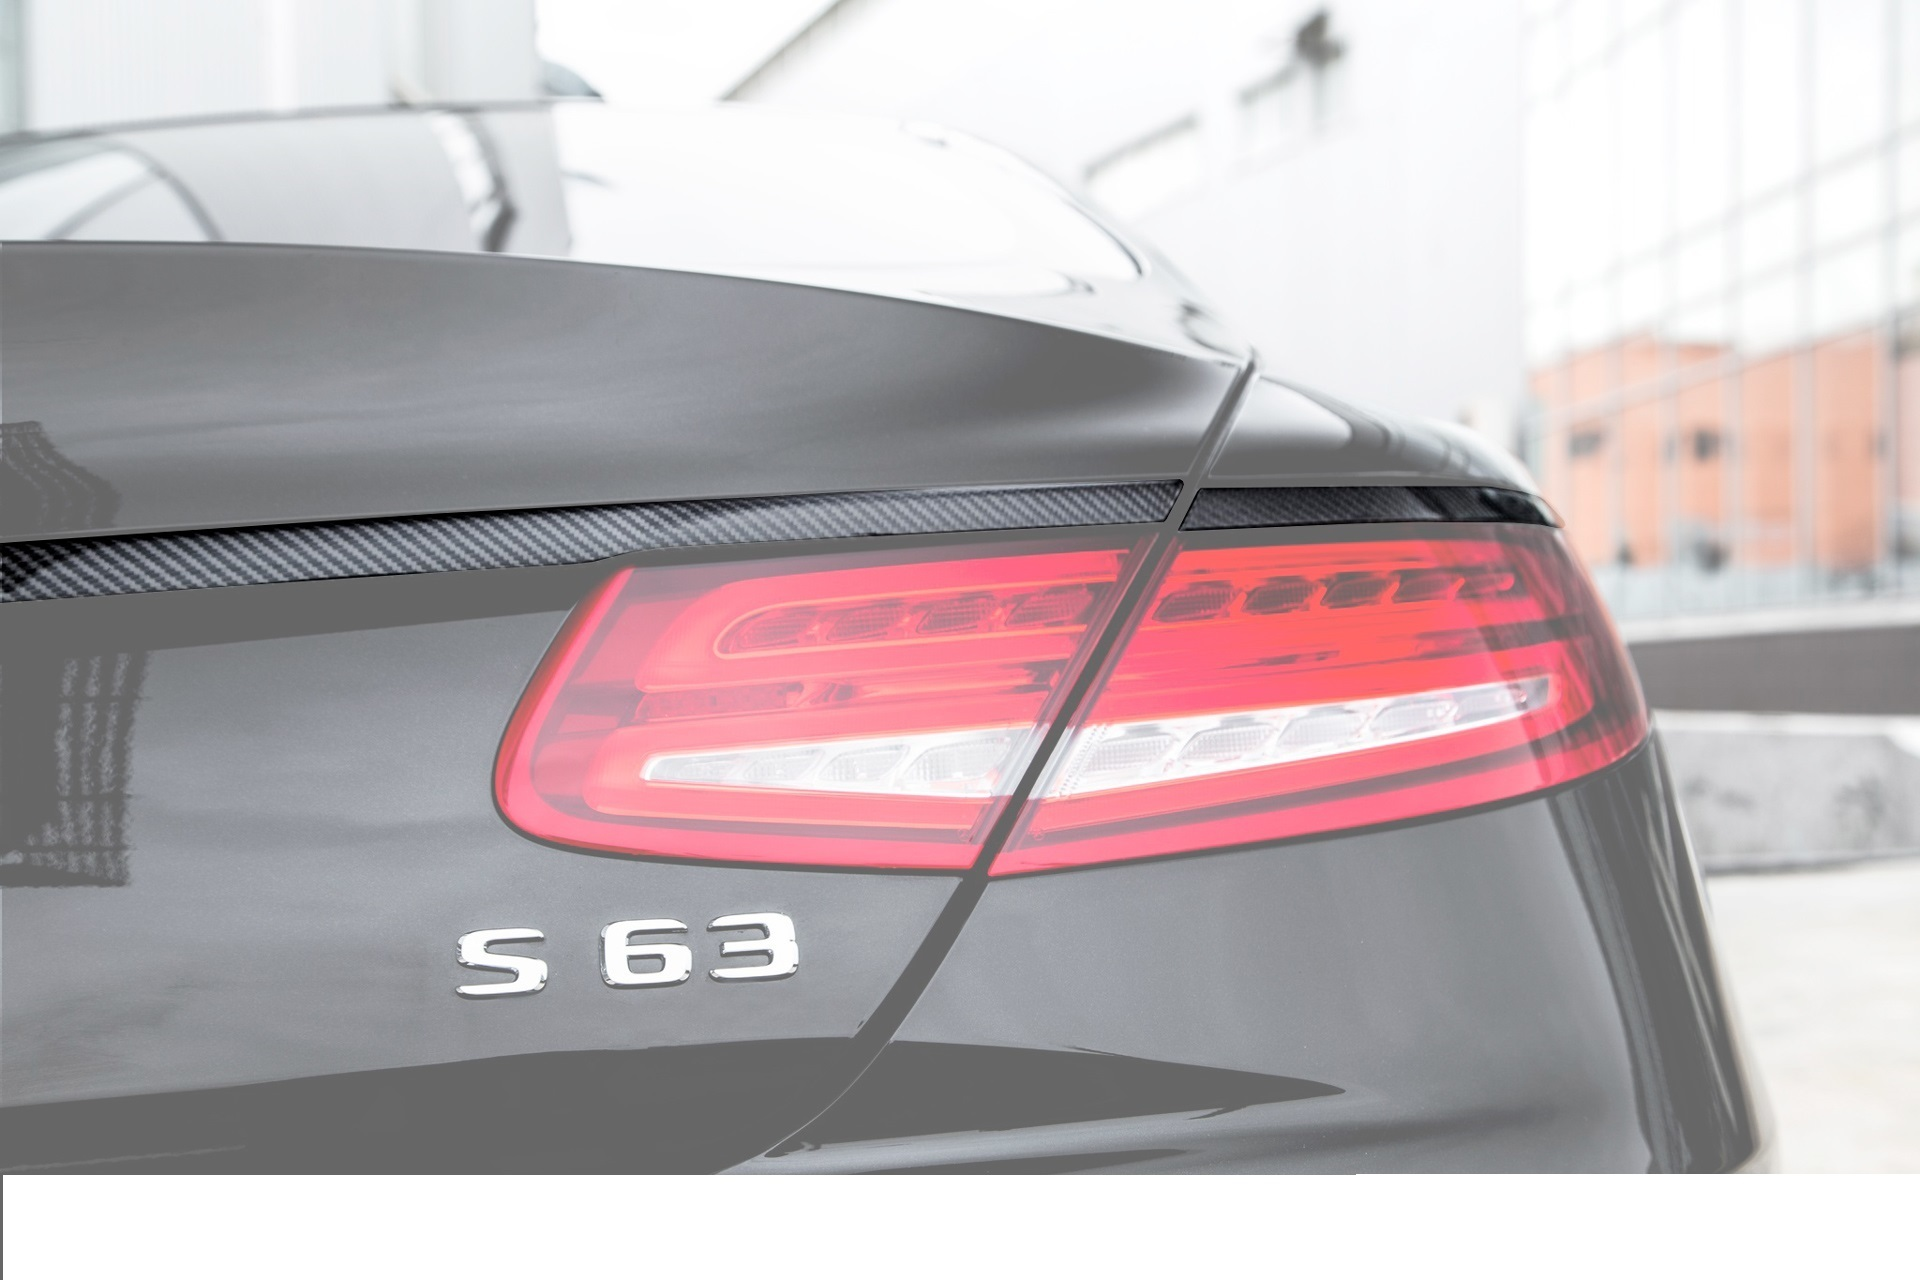 Hodoor Performance Carbon fiber trim over lights 63 AMG Brabus Style for Mercedes S-class coupe C217